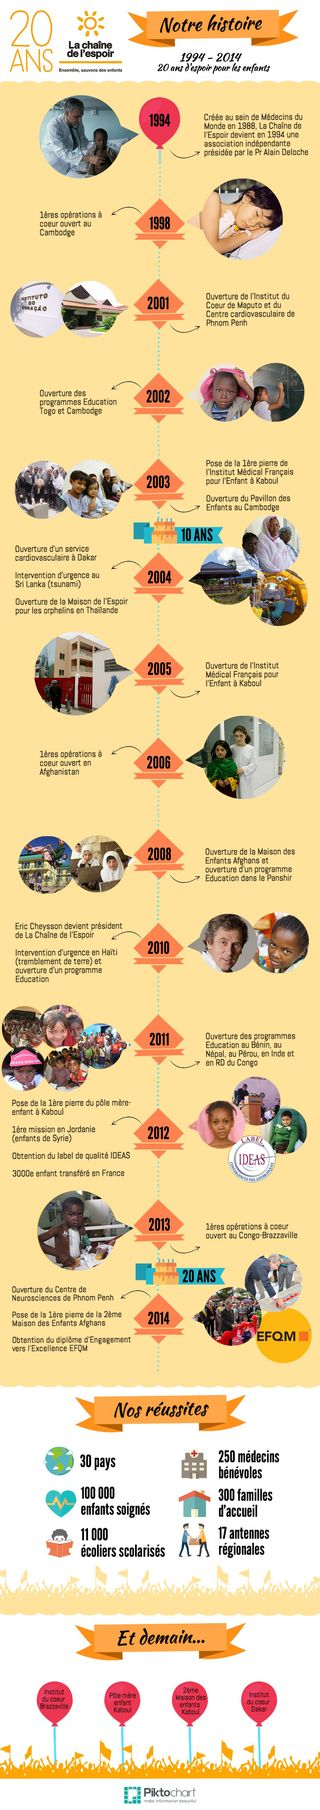 INFOGRAPHIE_20anscde